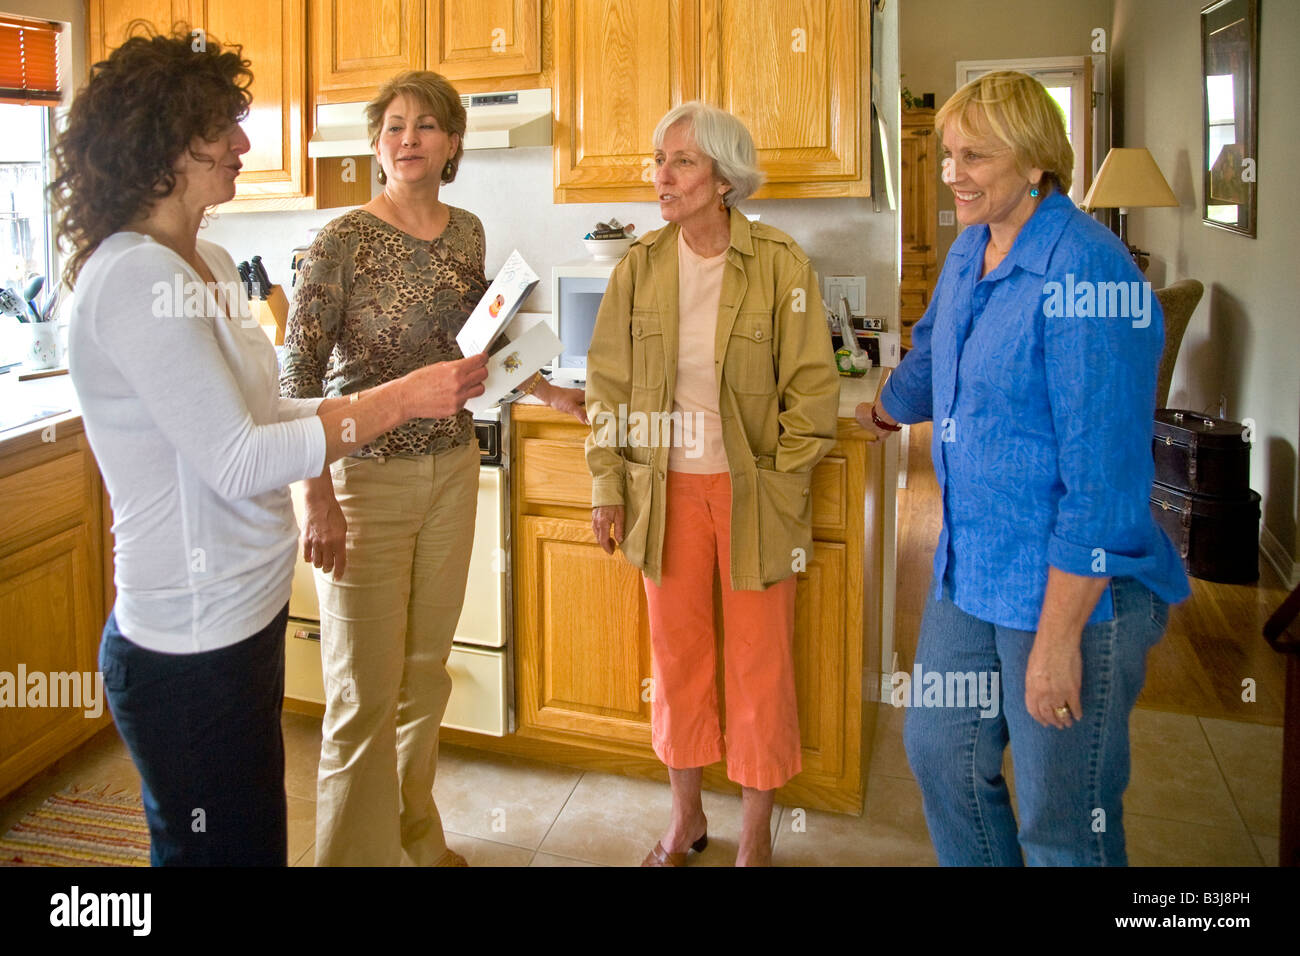 Middle Aged Well Wishers At A 50 Year Old Woman S Birthday Party Peruse Their Hostesses Cards